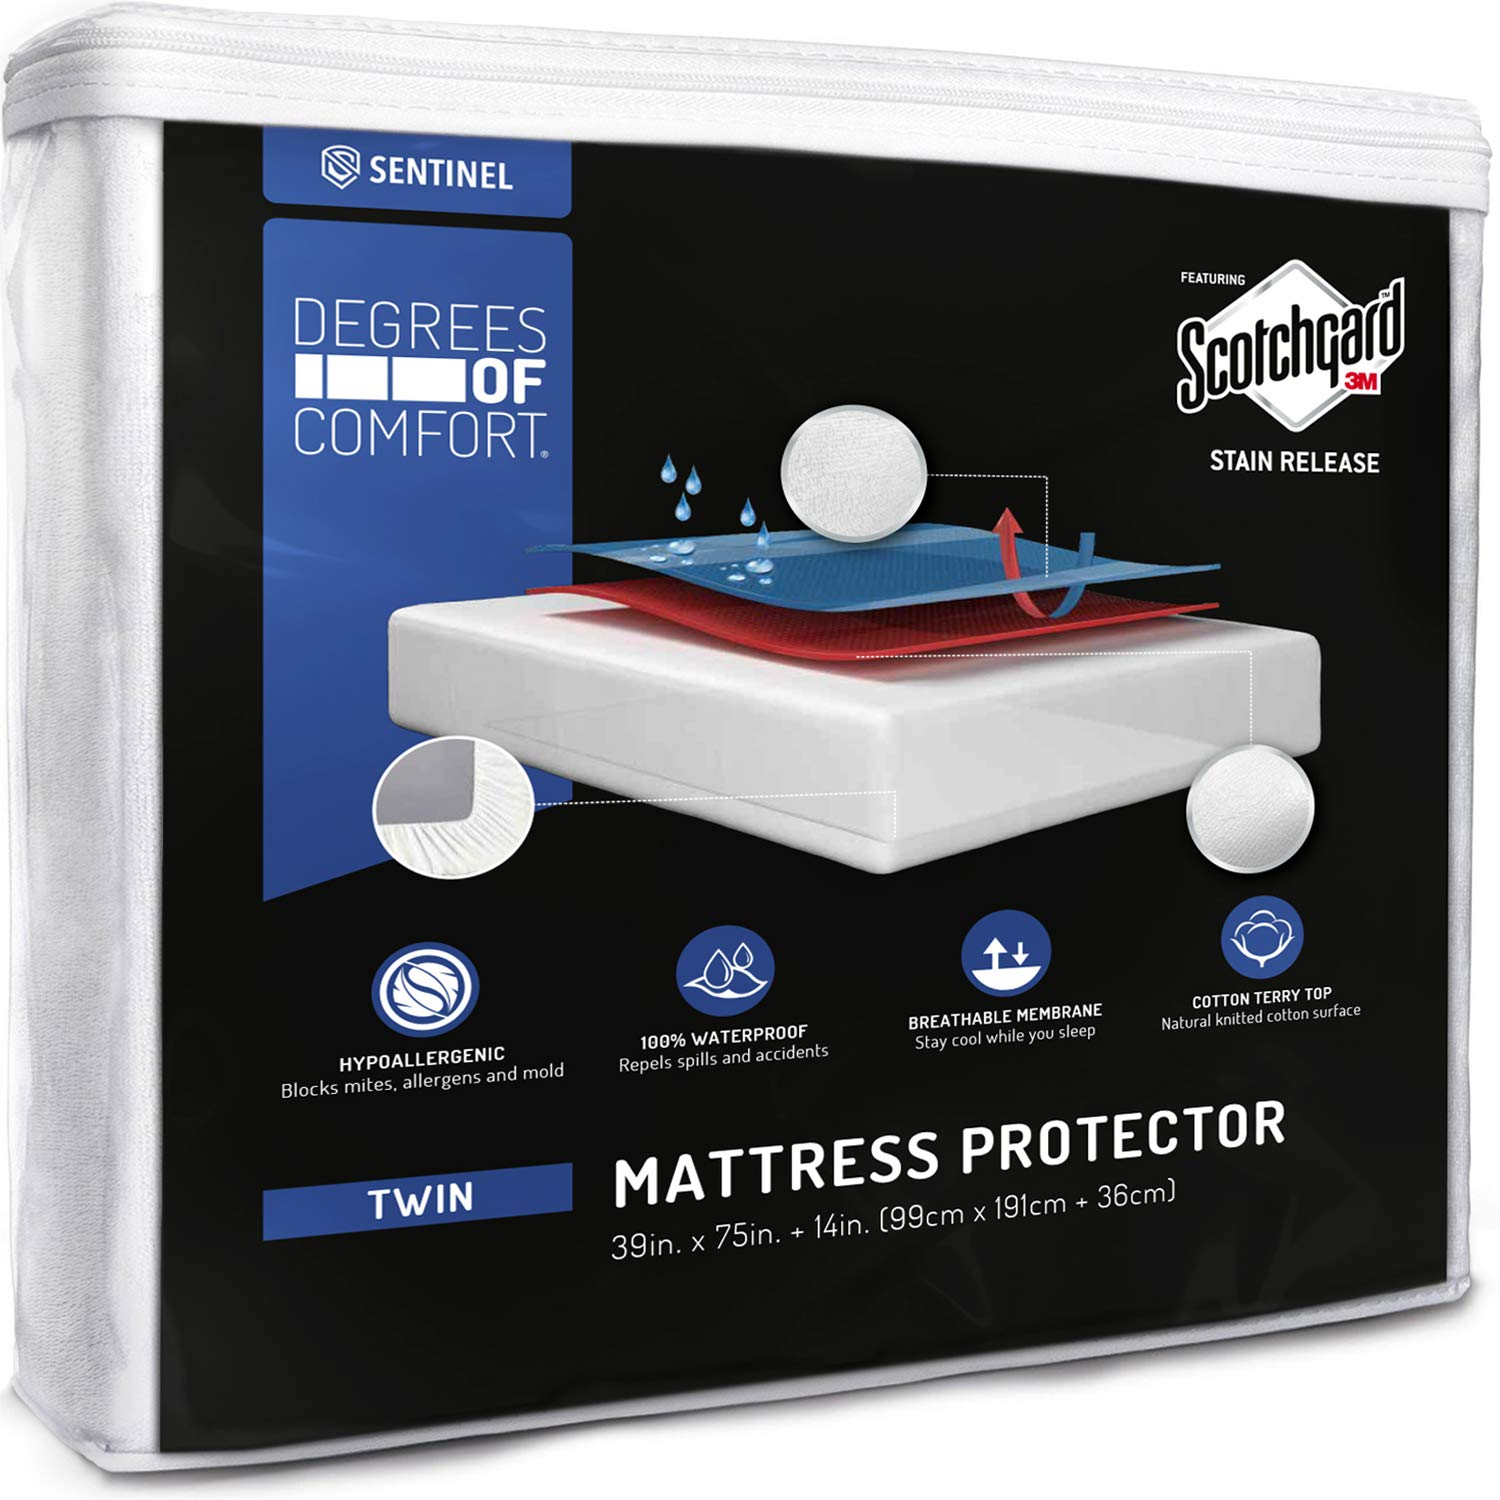 Twin Mattress Protector Waterproof | Fitted Cotton Terry Breathable Cover with 3M Scotchgard Stain Release Technology | Urine and Spill Protection